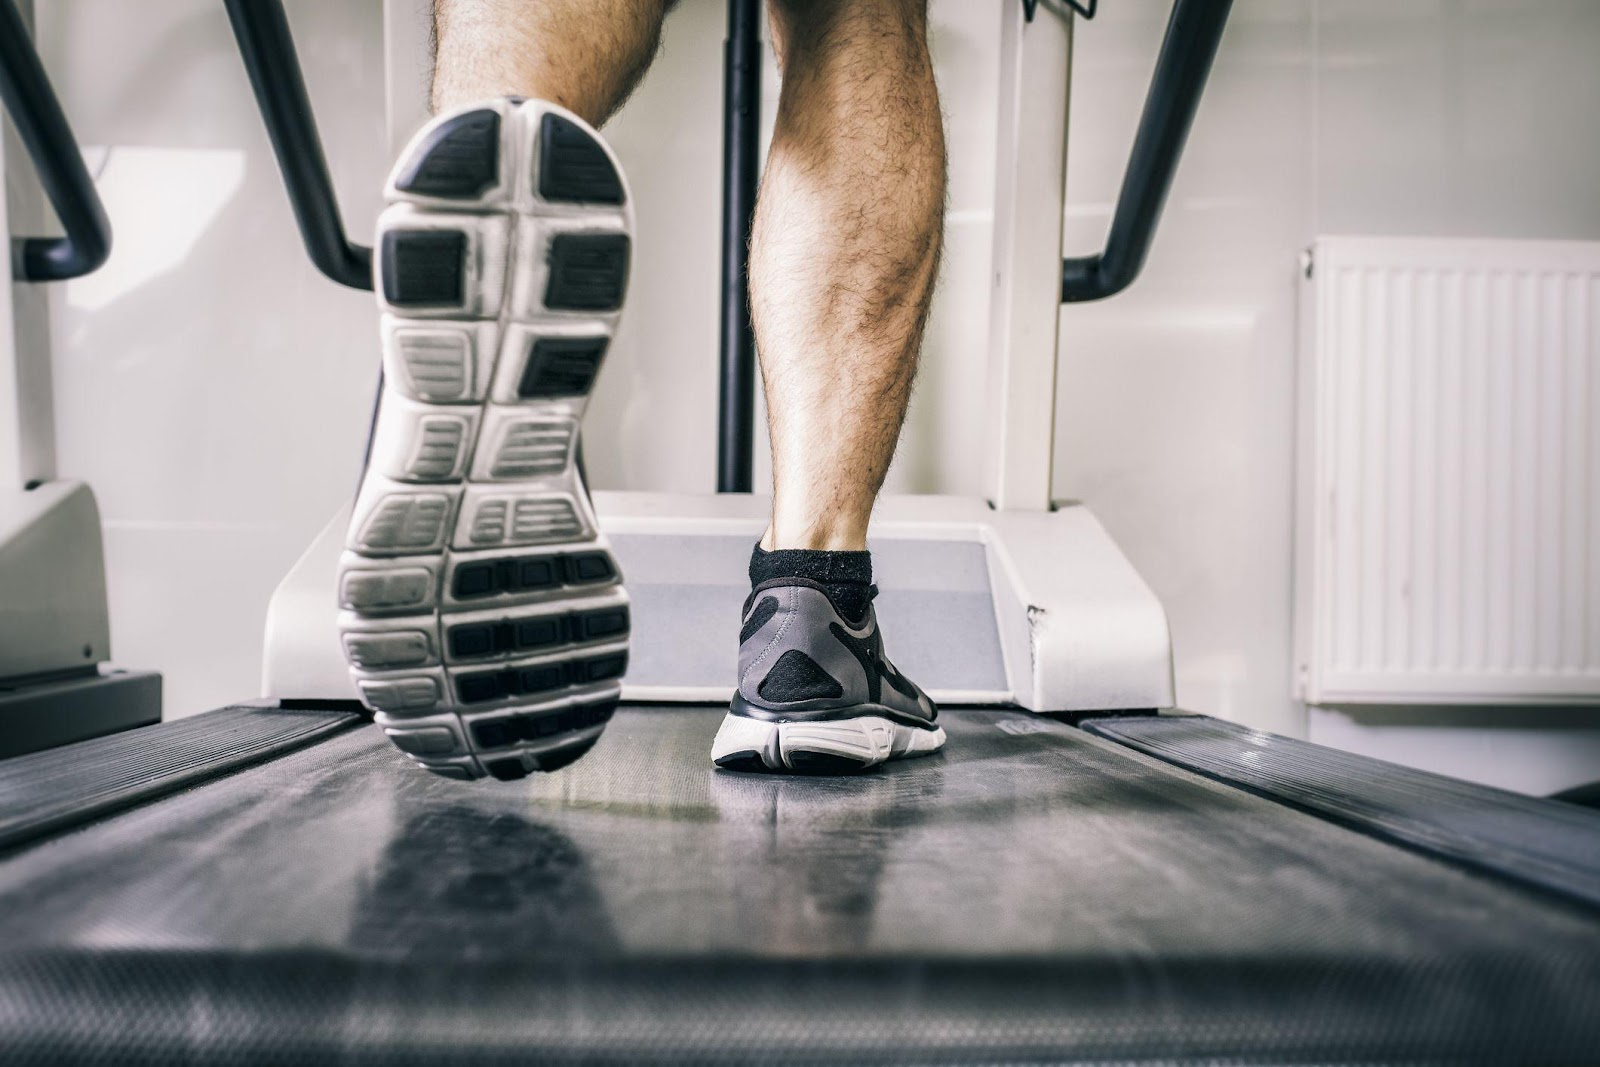 High Blood Pressure During Exercise Study